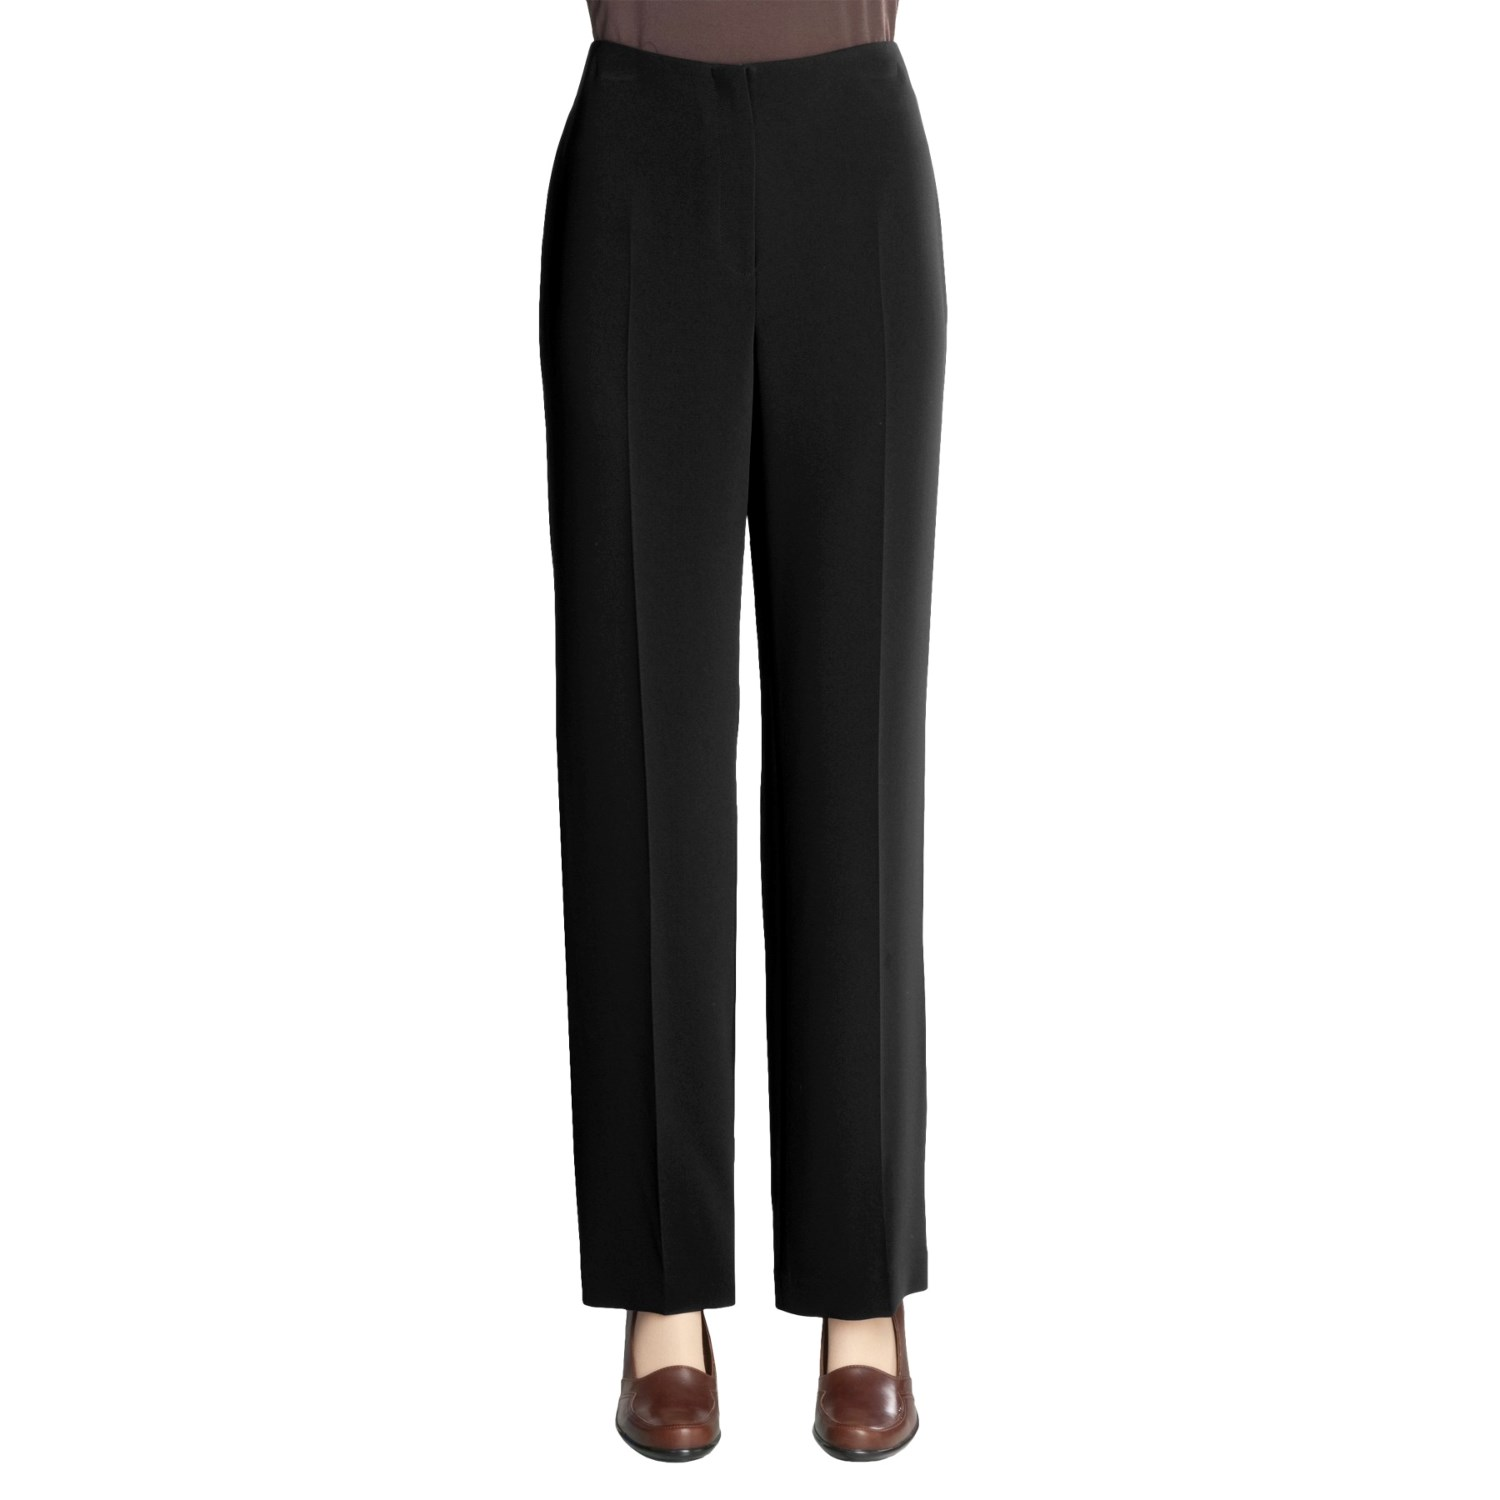 Awesome Pleated Front Dress Pants  Viscose For Women